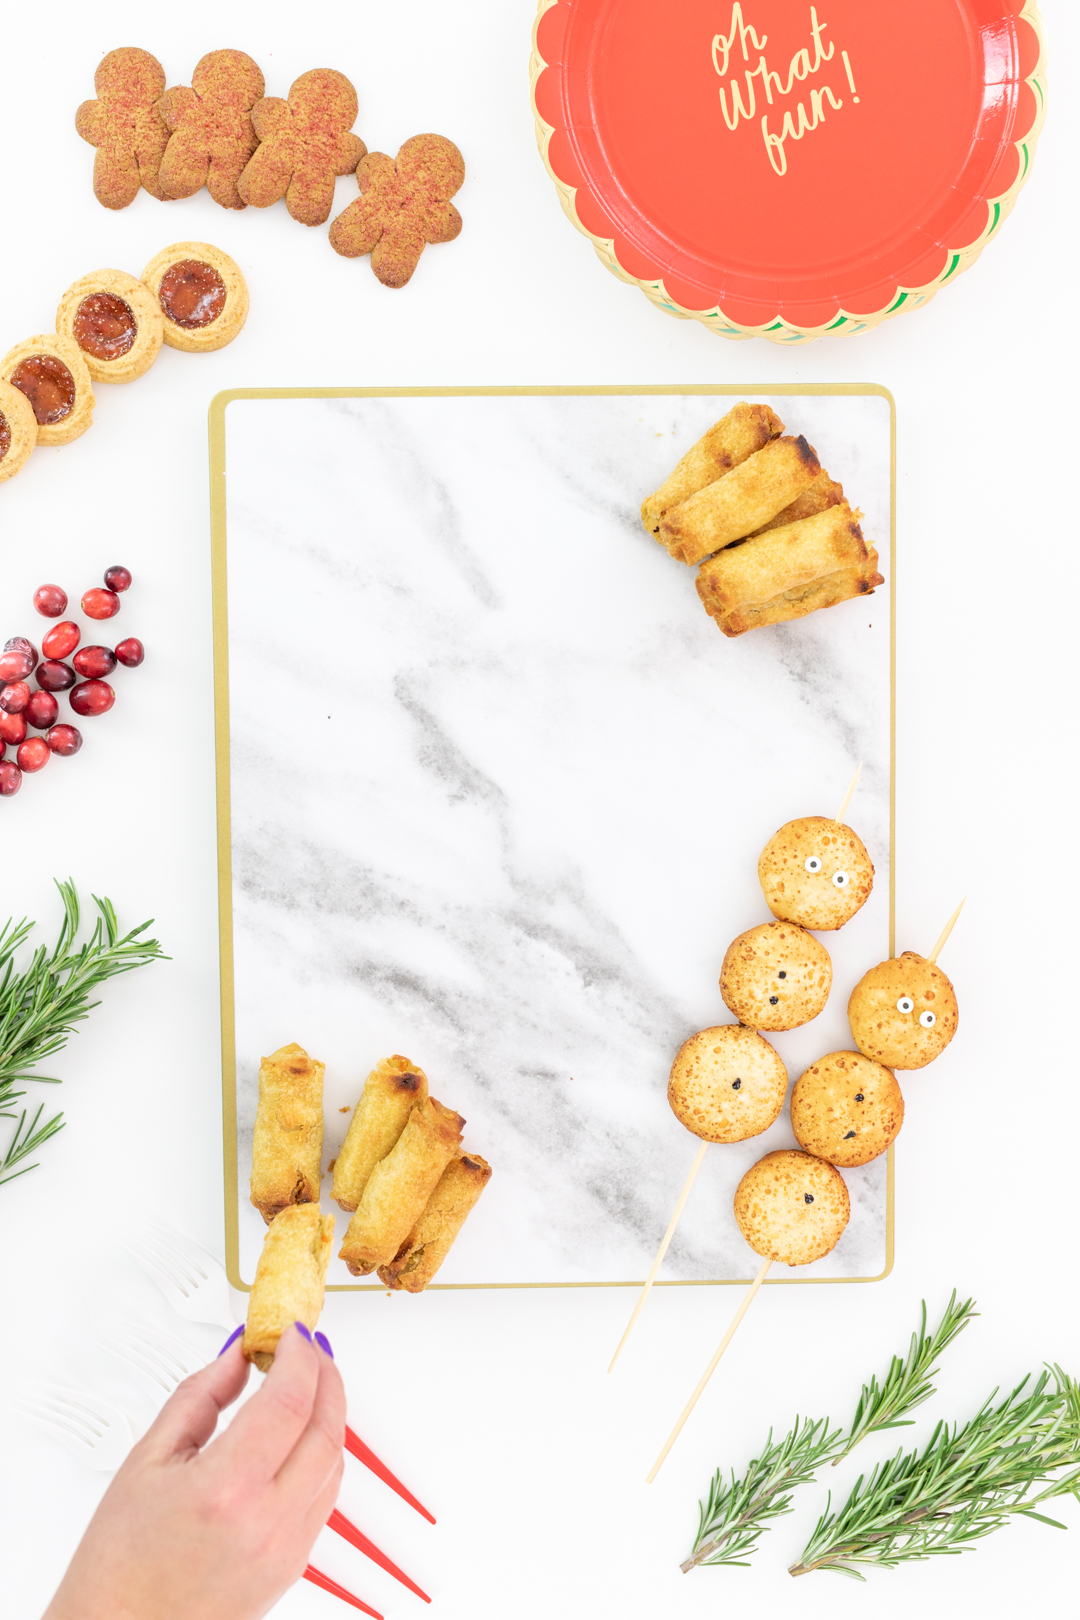 setting up a savory holiday snack board